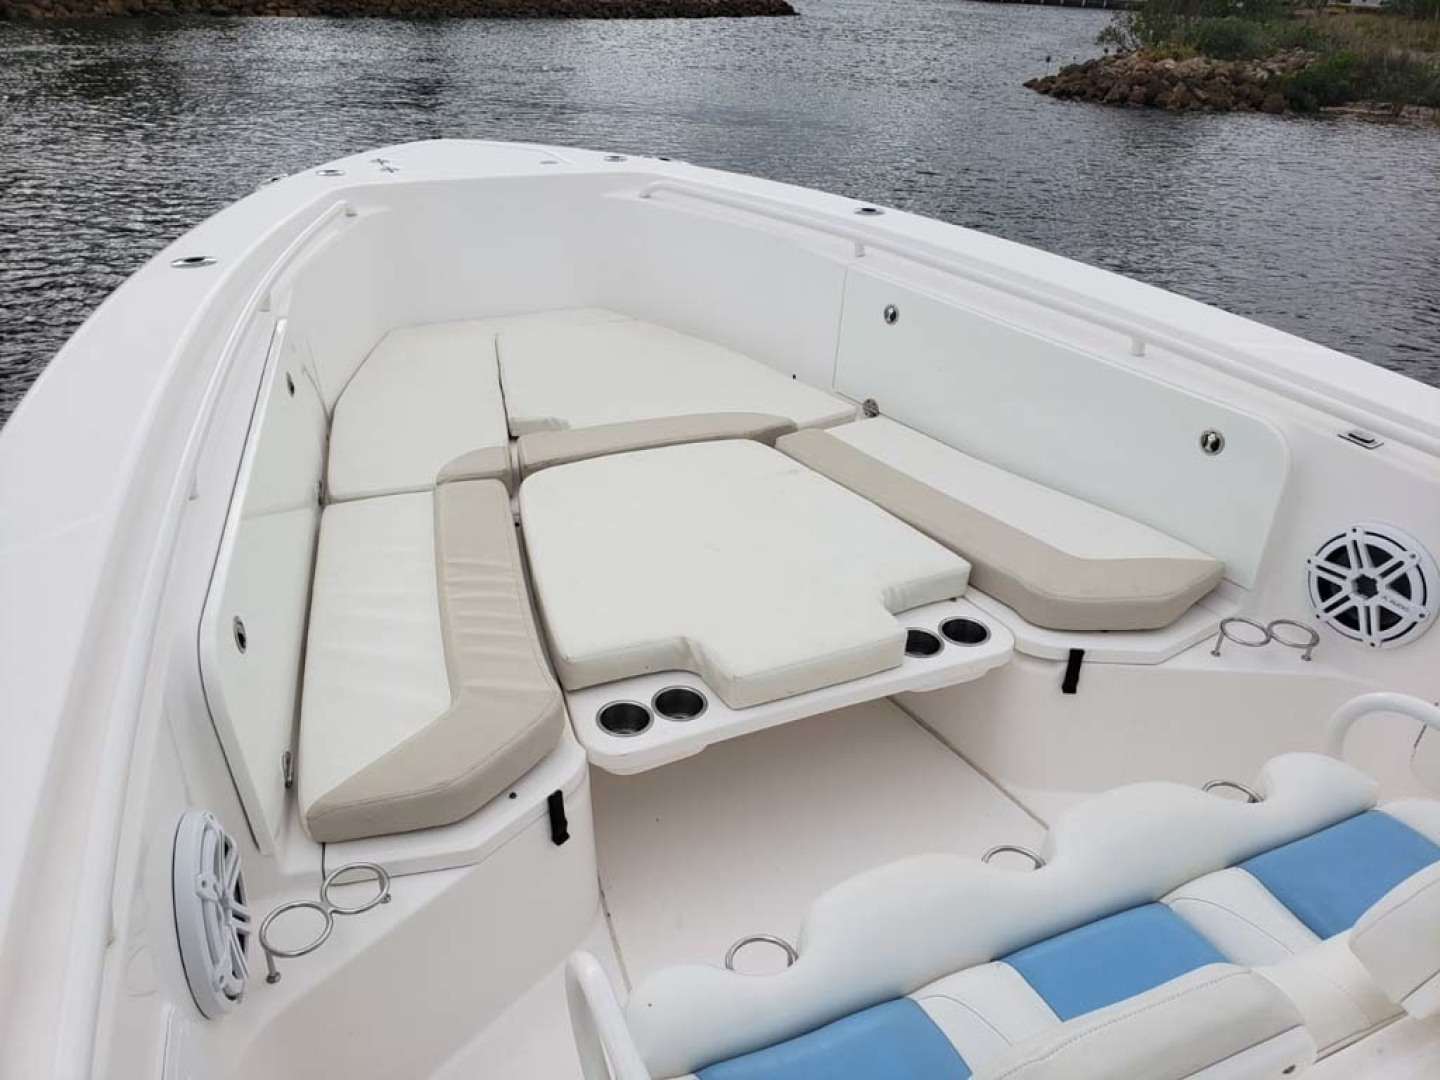 Everglades-350 CC 2011-Sea Predator Palm Beach Gardens-Florida-United States-Bow Seating And Lounging With Electric Pop Up Table For Picnicking-1359615 | Thumbnail